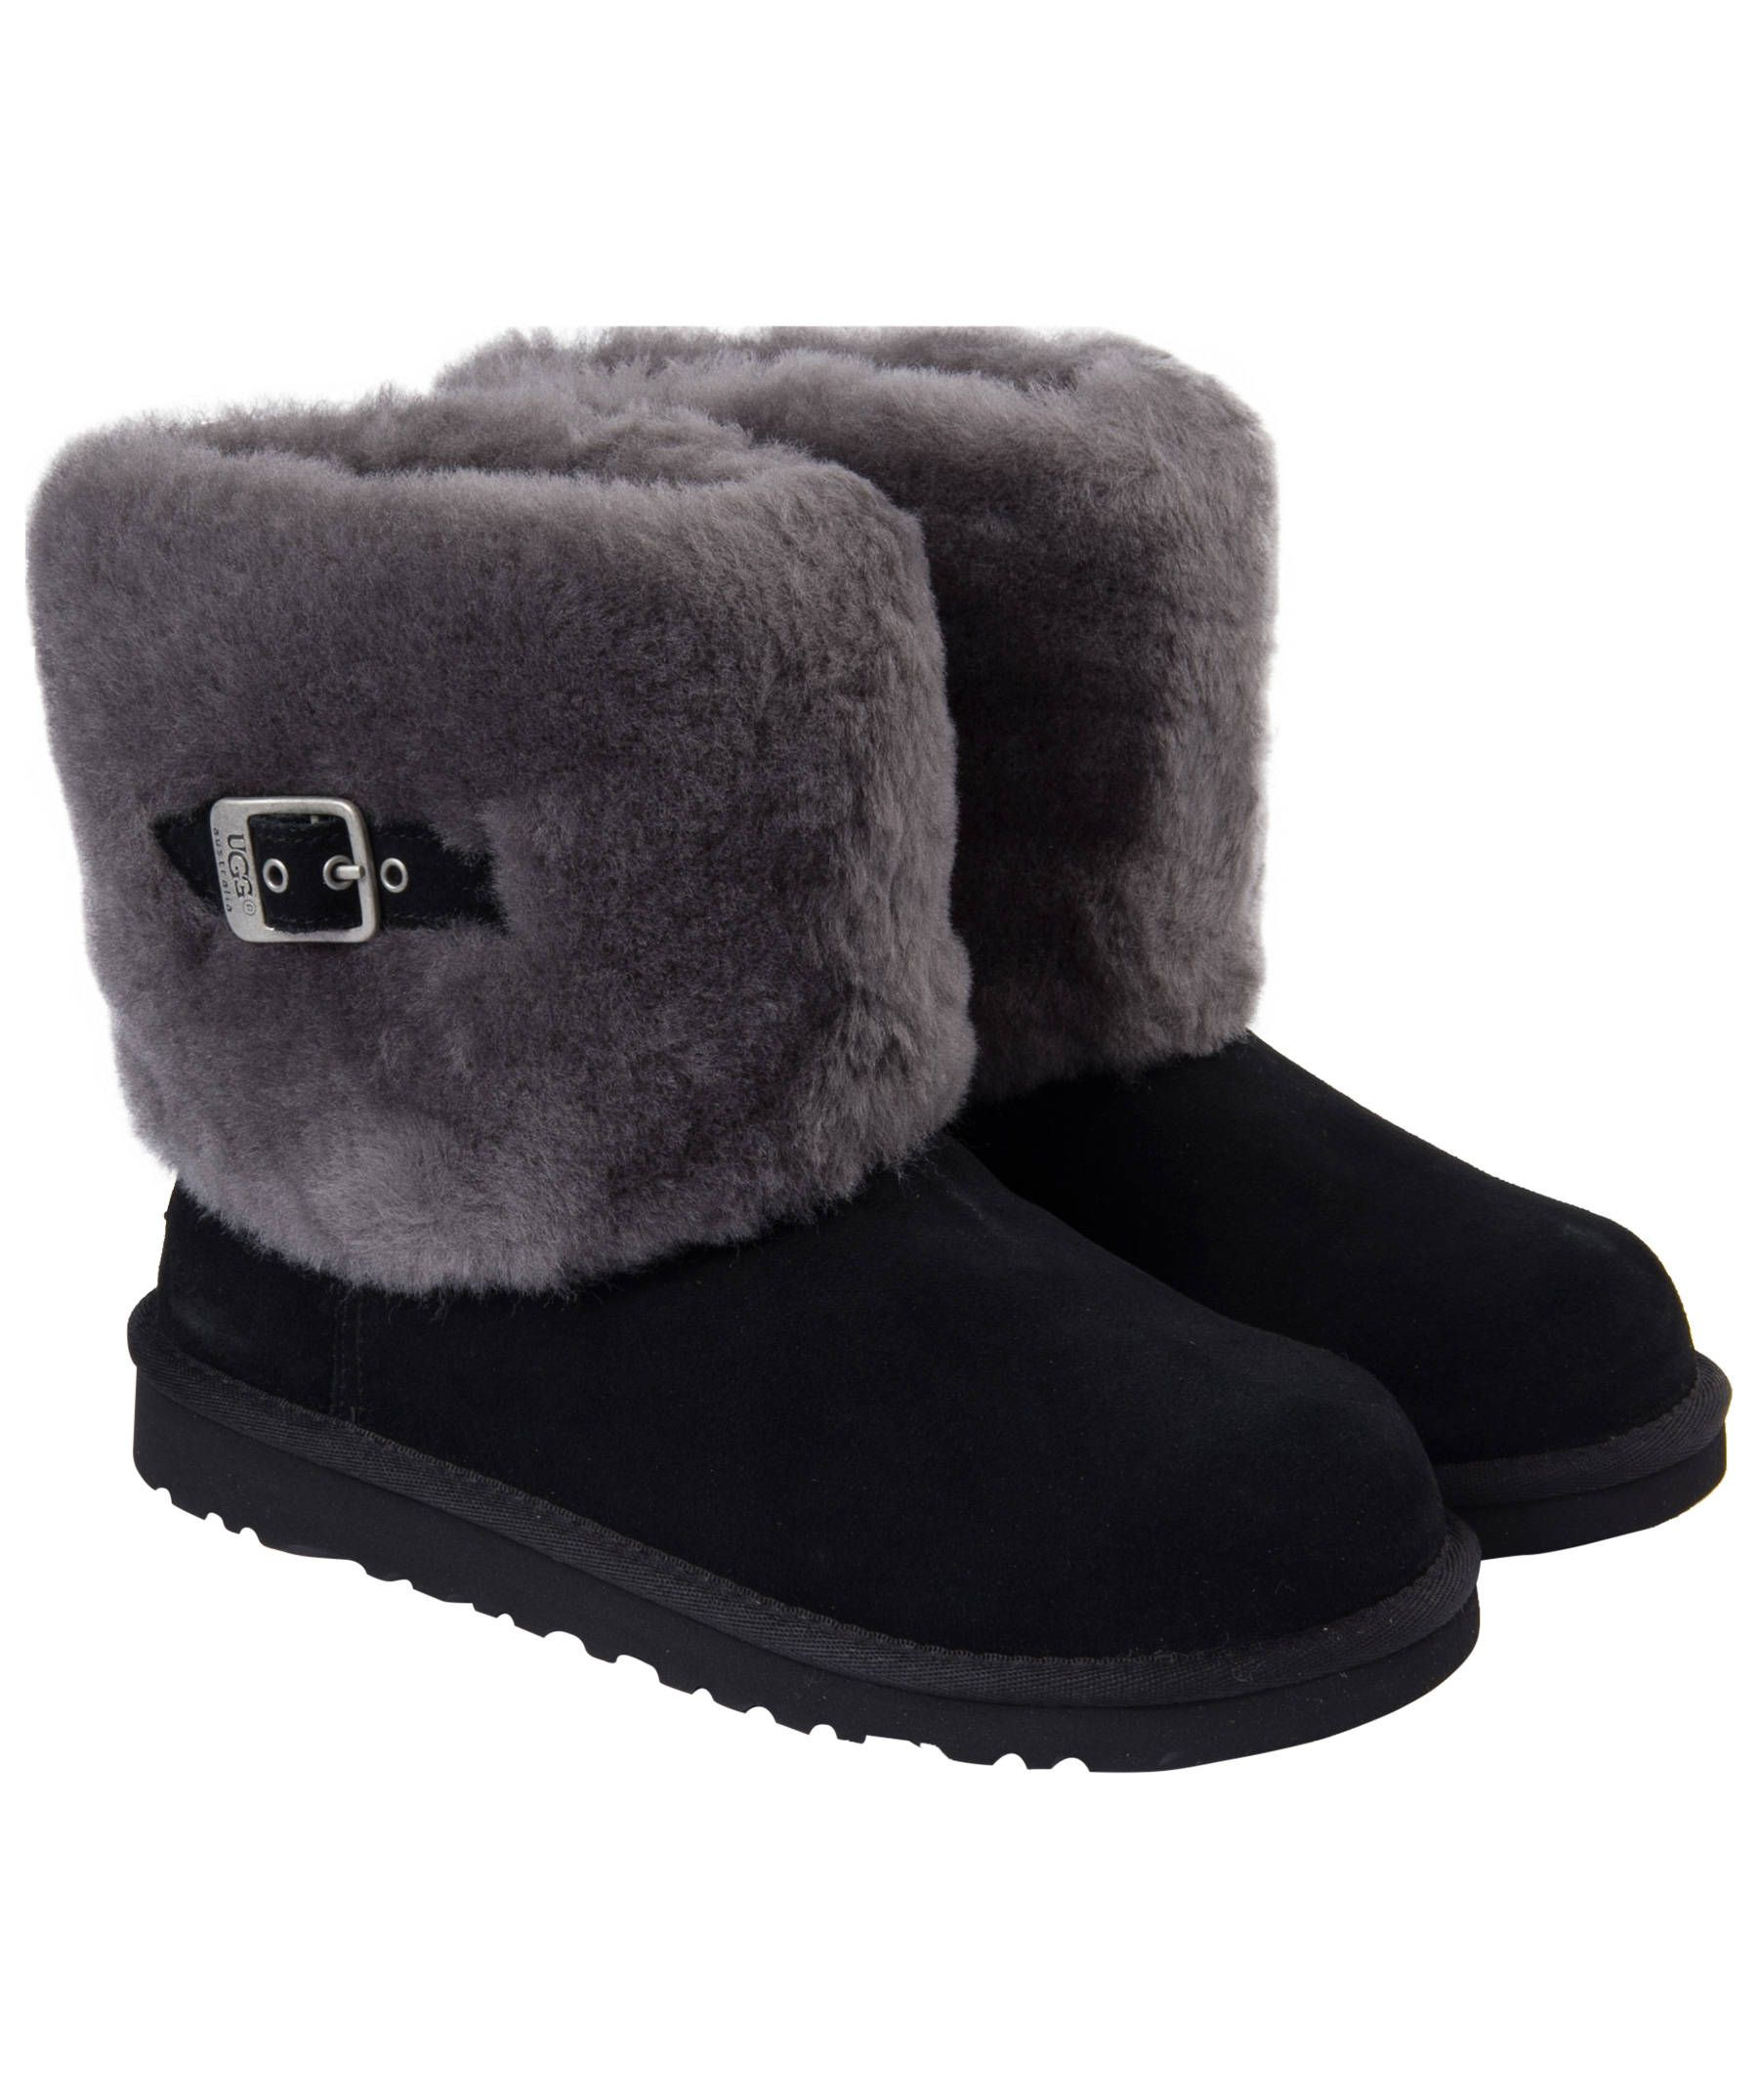 Really hot Shoes – UGG Boots | Fashion | Ugg boots, Uggs und